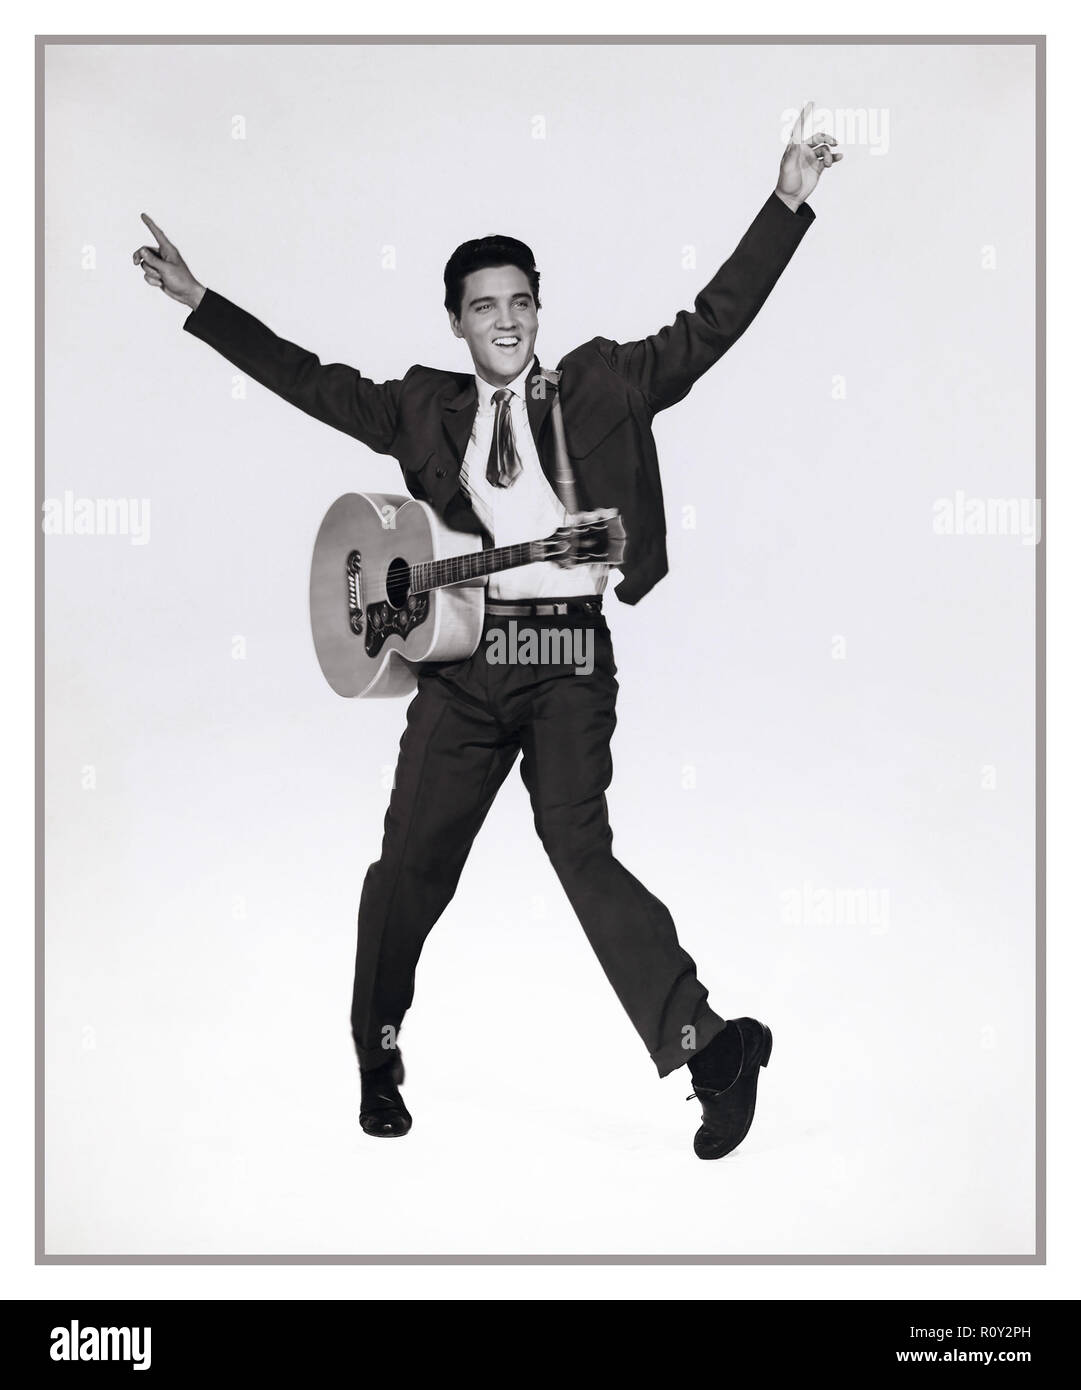 ELVIS PRESLEY film still from King Creole 1958 (A rebellious young man takes a job as a nightclub singer to make ends meet, attracting the attention of a local crime boss etc...) - Stock Image